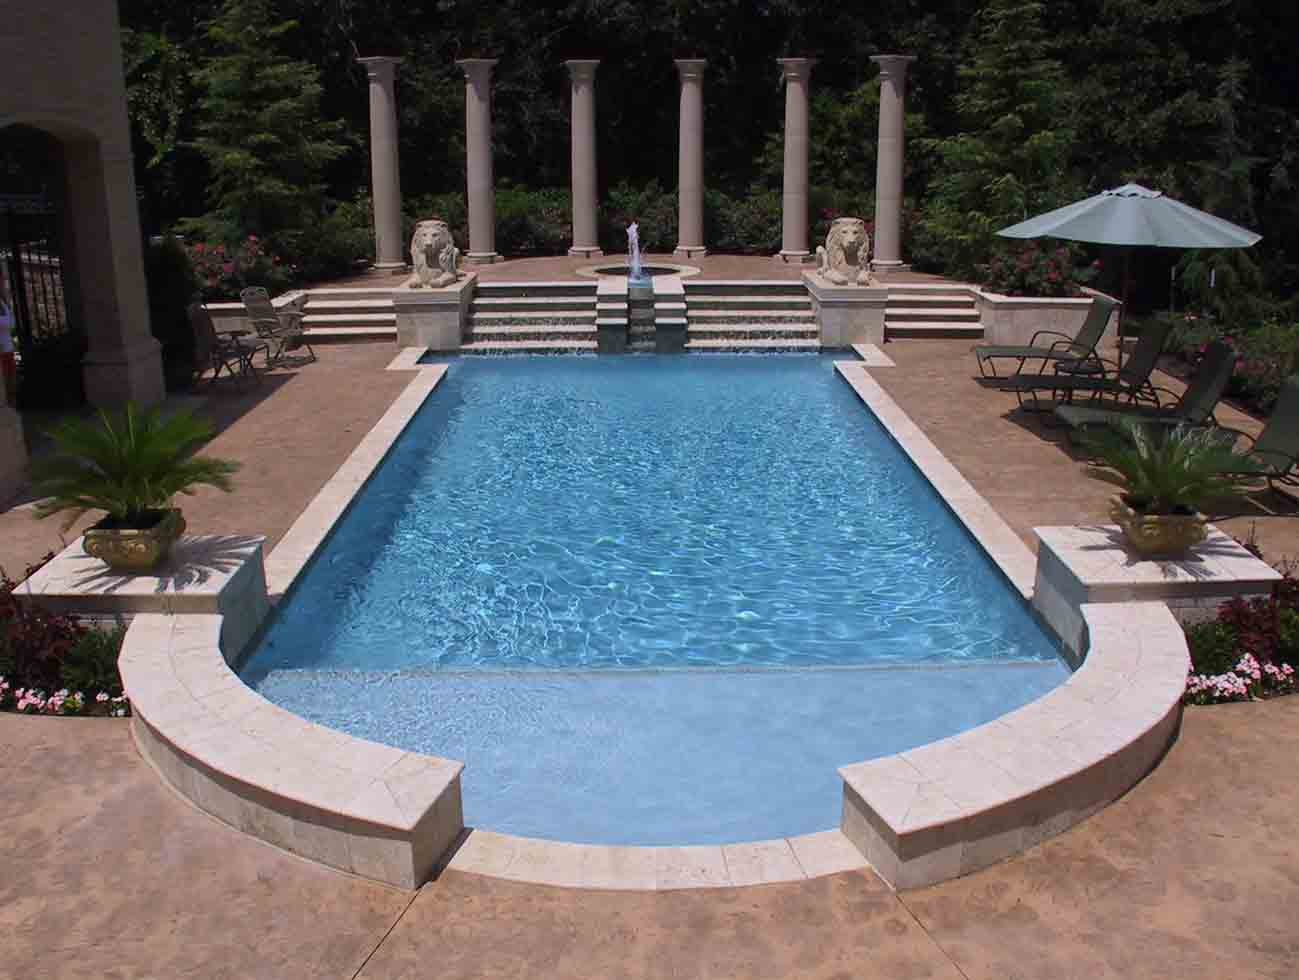 Roman Swimming Pool Designs roman grecian roman style pool design roman swimming pool design Swimming Pool Built By Oklahoma City Pool Builders Bhp